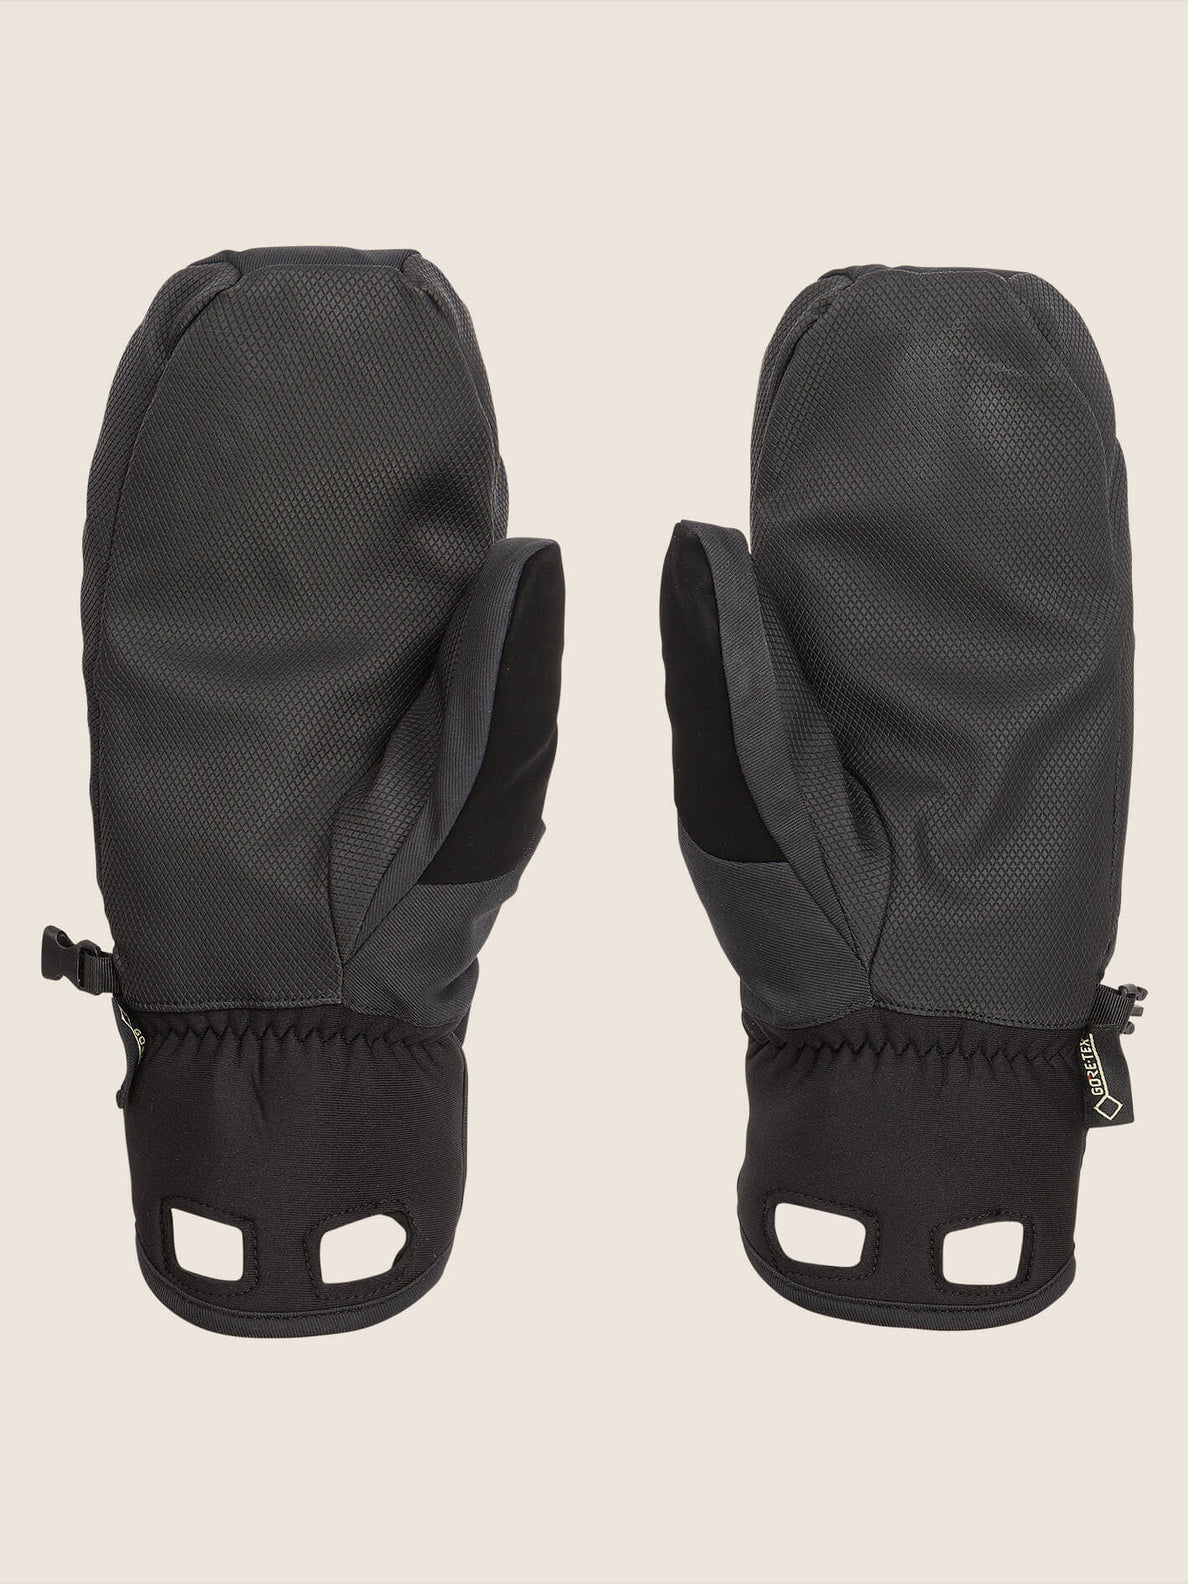 Stay Dry Gore-tex Mitt In Black, Back View